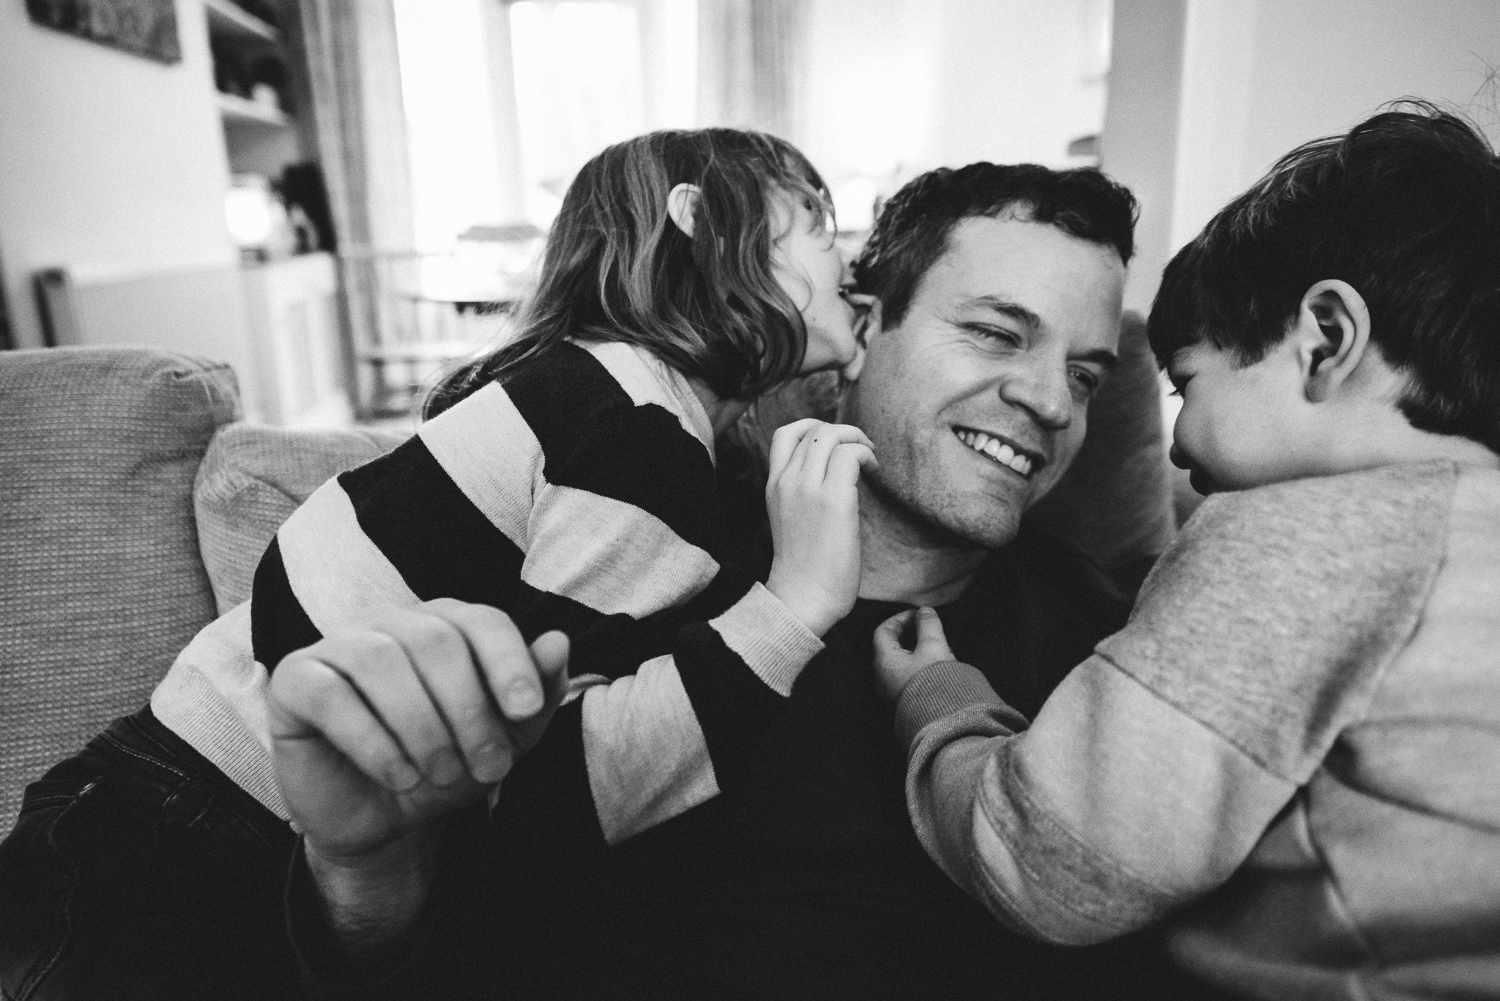 Copy of dad and his two children share a tender moment together - Diana